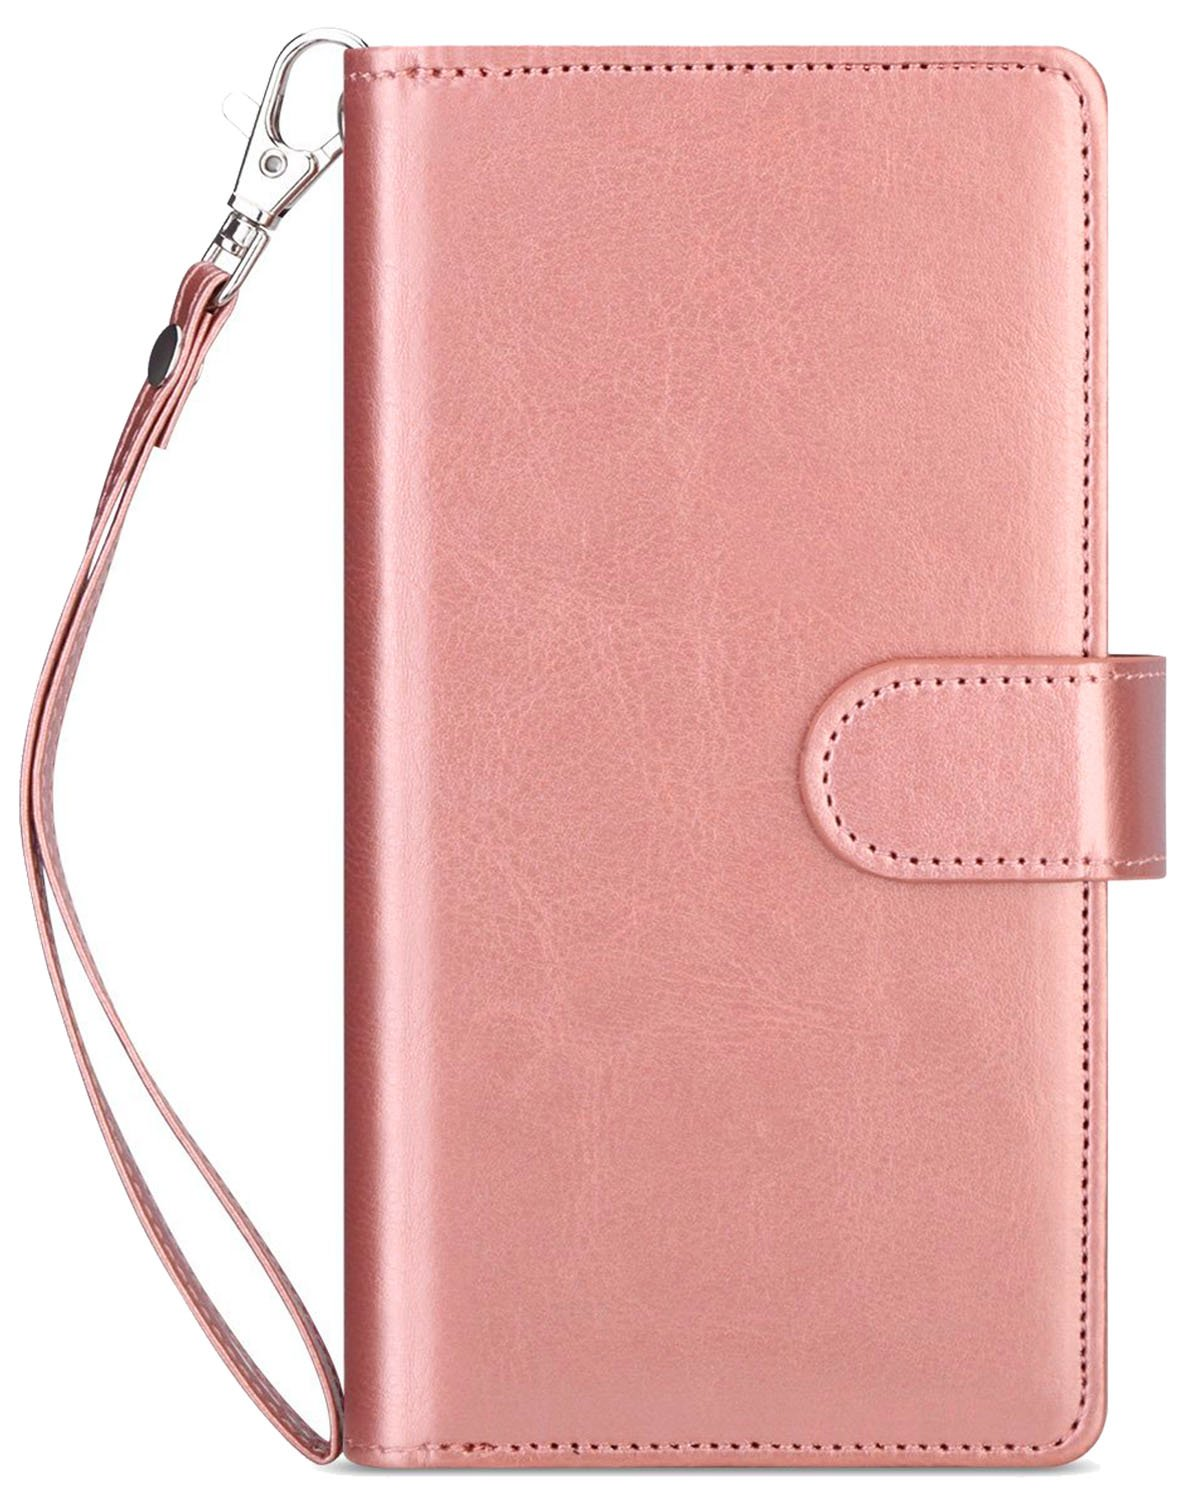 iPhone 6 Plus Case, iPhone 6S Plus Wallet Case,Dailylux Premium PU Leather+TPU Inner Shell Flip Case with 9 Card Slot Holder Shockproof Cover for iPhone 6/6s Plus 5.5 inch-Rose Gold Flower